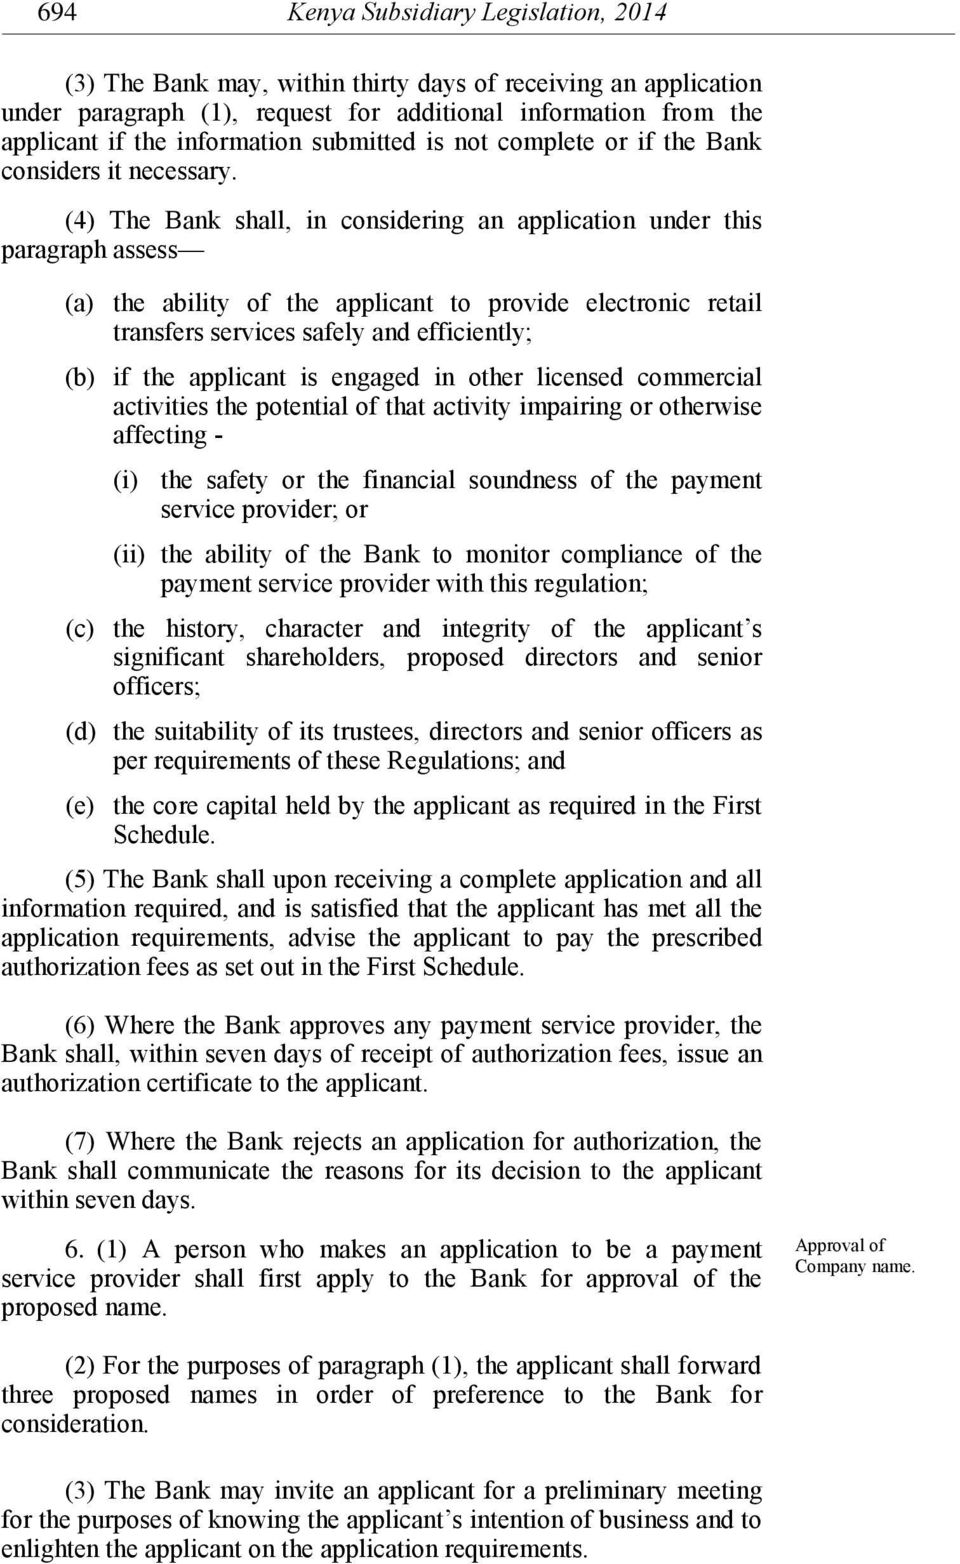 (4) The Bank shall, in considering an application under this paragraph assess (a) the ability of the applicant to provide electronic retail transfers services safely and efficiently; (b) if the